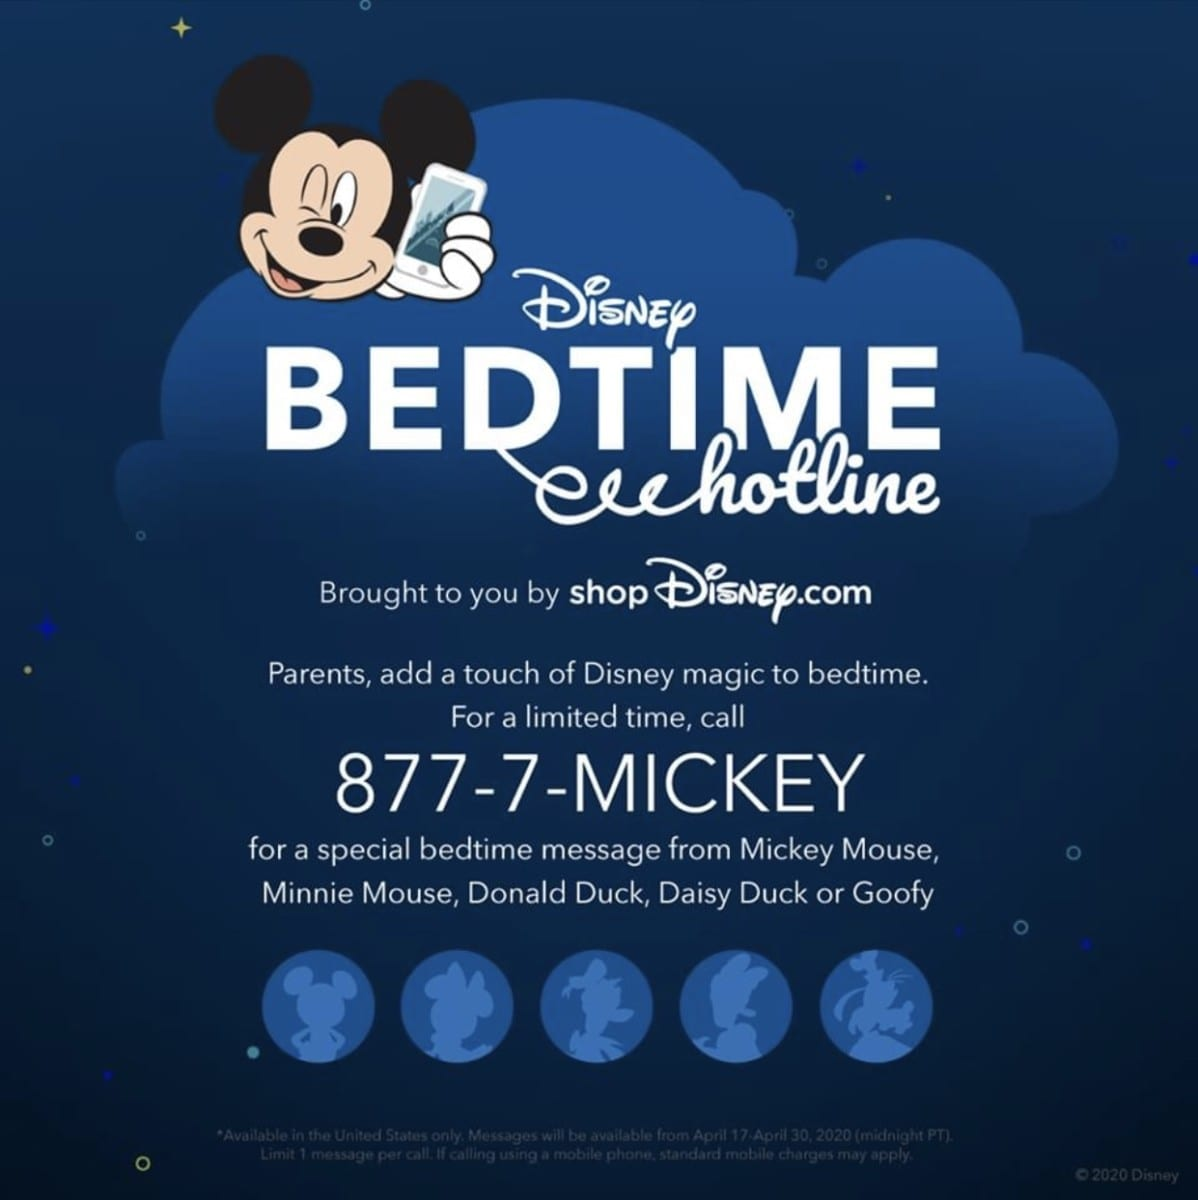 Disney Bedtime Hotline, Brought to You by shopDisney.com, Returns for a Limited Time 2